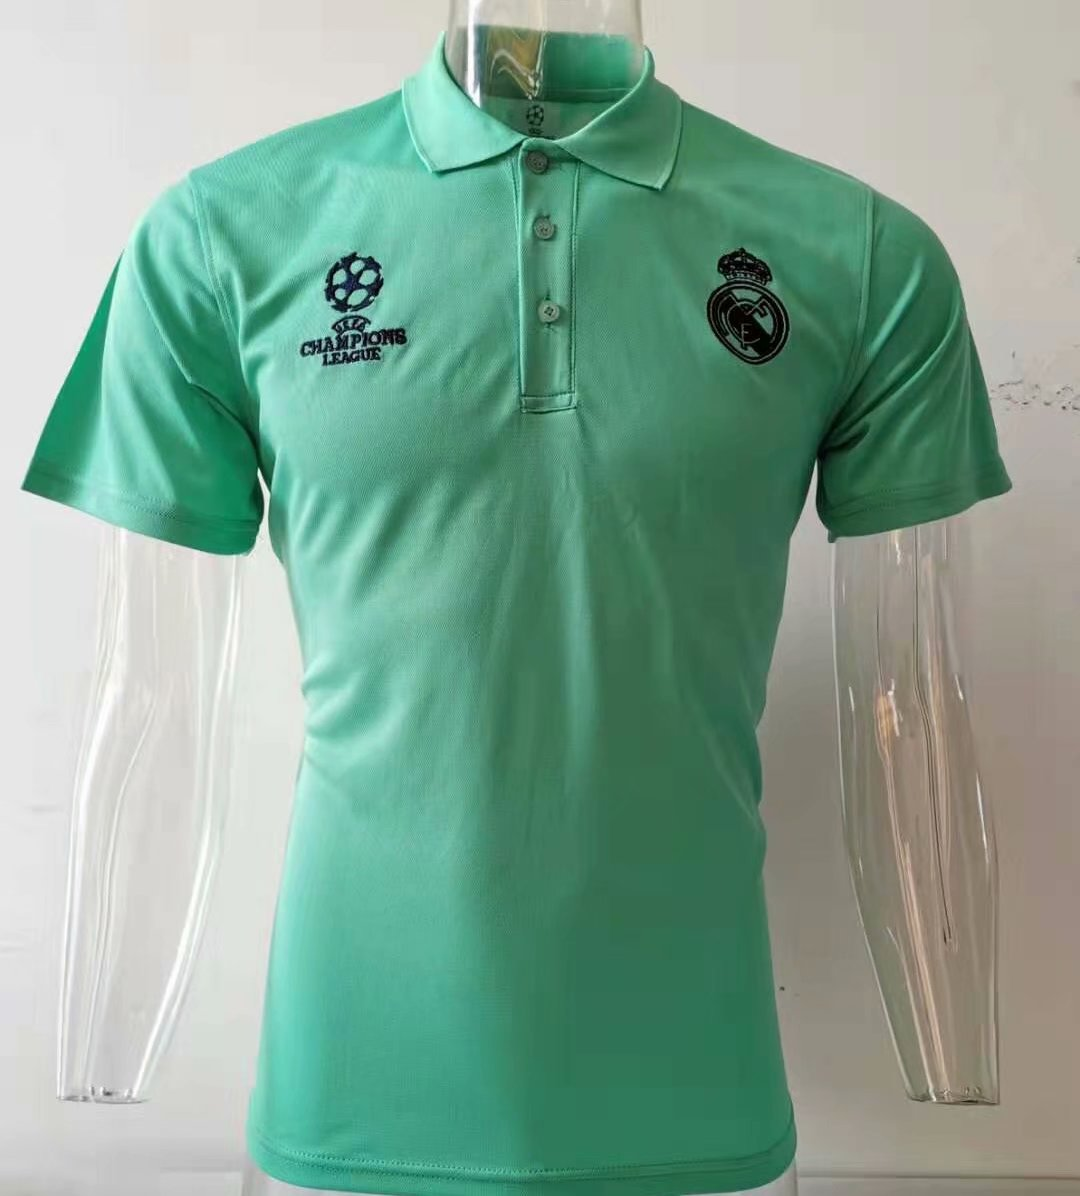 Camiseta Polo Real Madrid Champions 2019-2020 vert